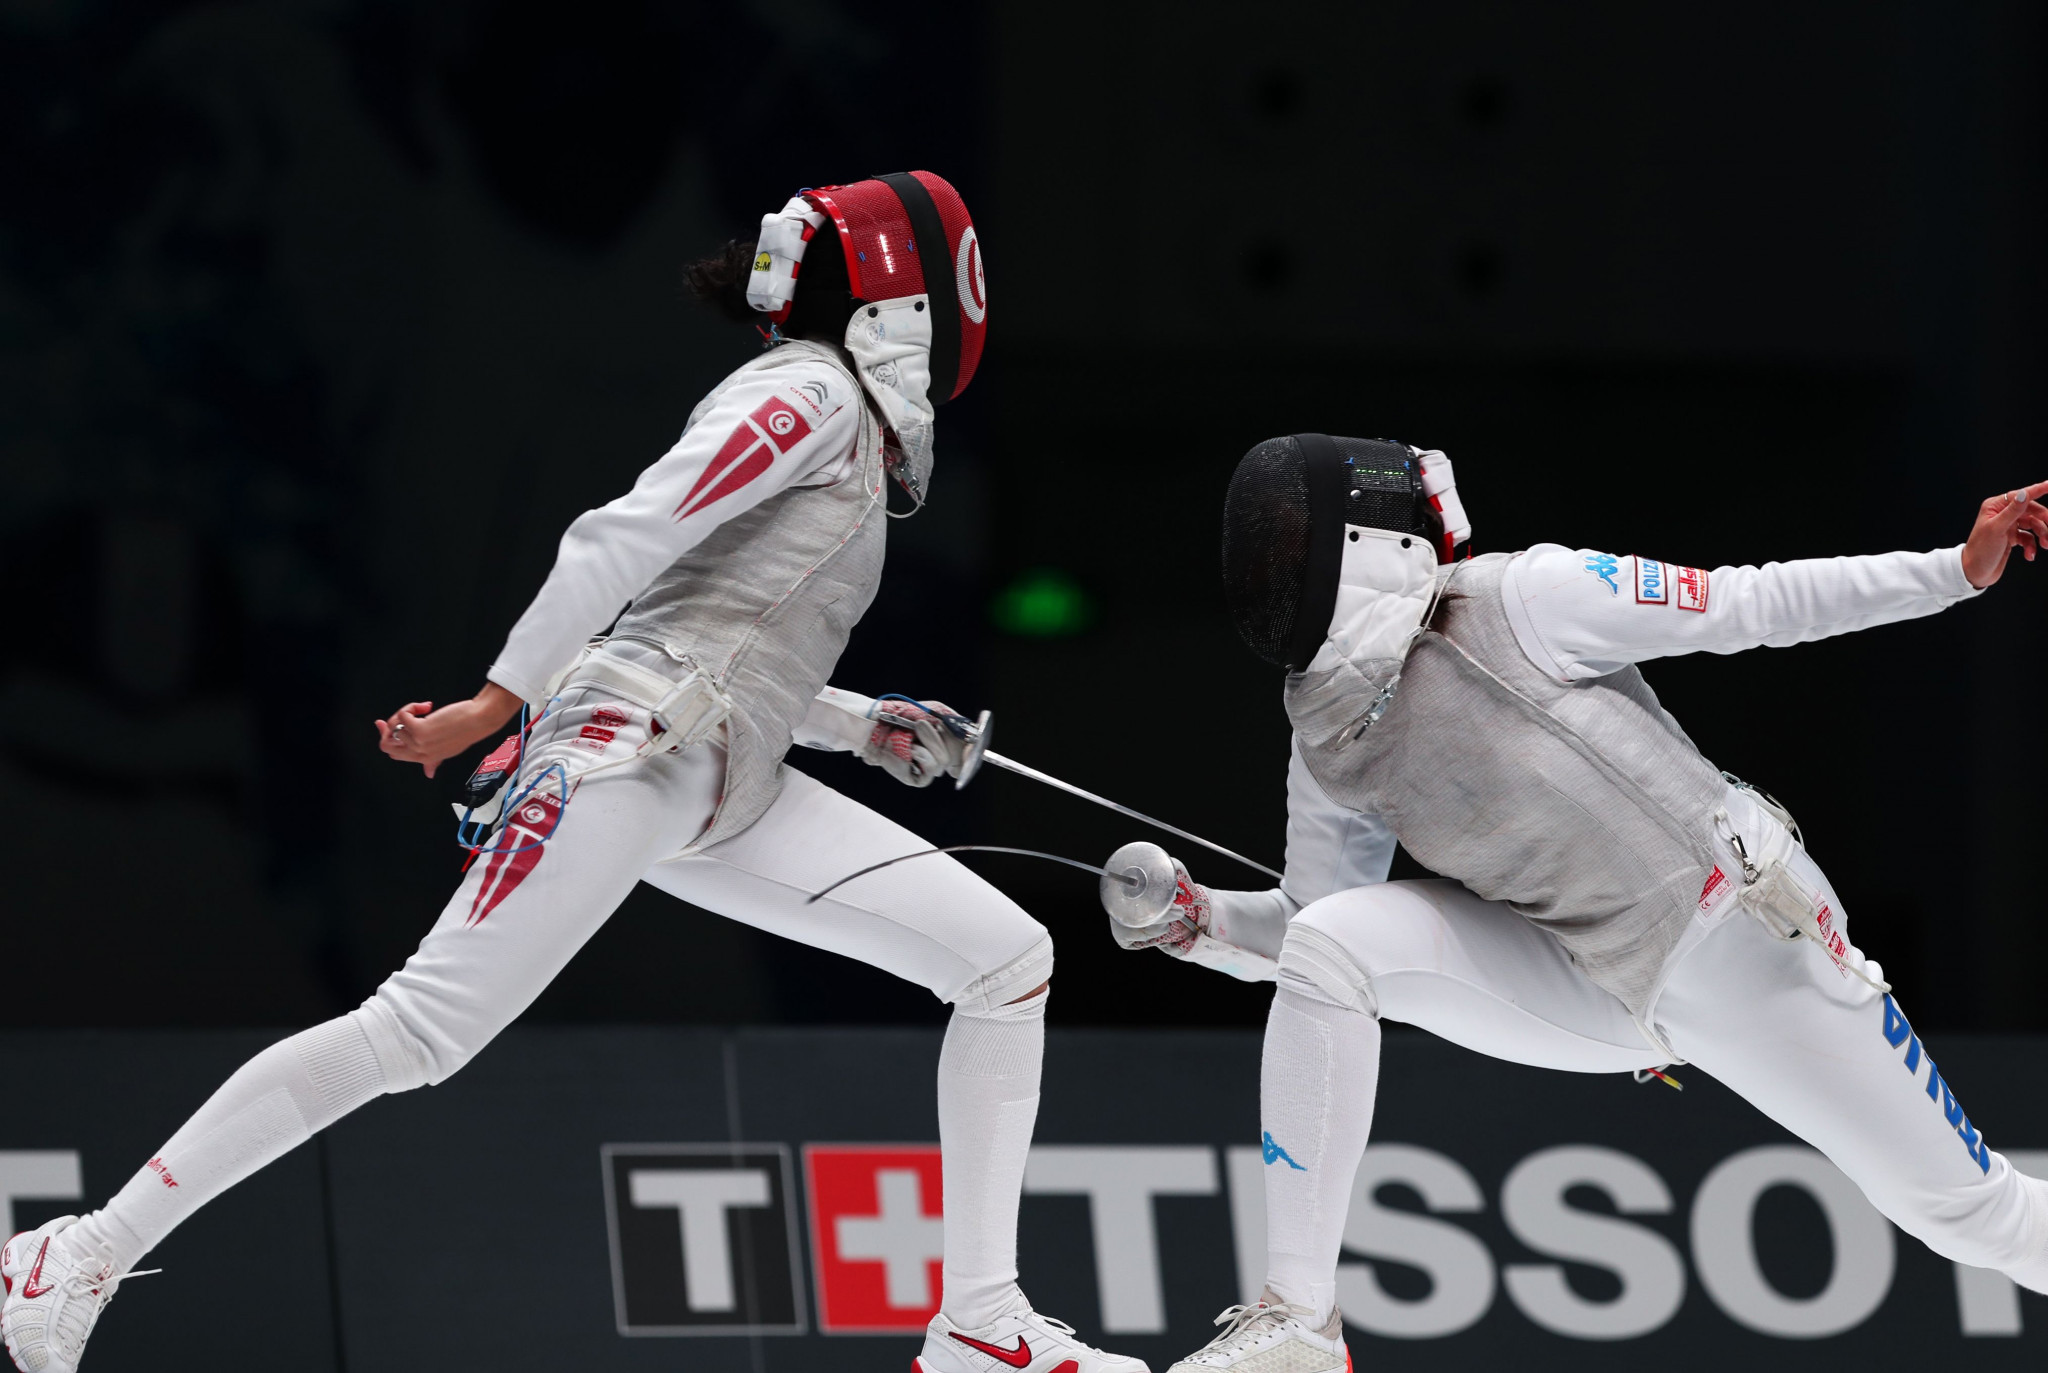 Olympic bronze medallist Boubakri among field for African Fencing Championships in Bamako